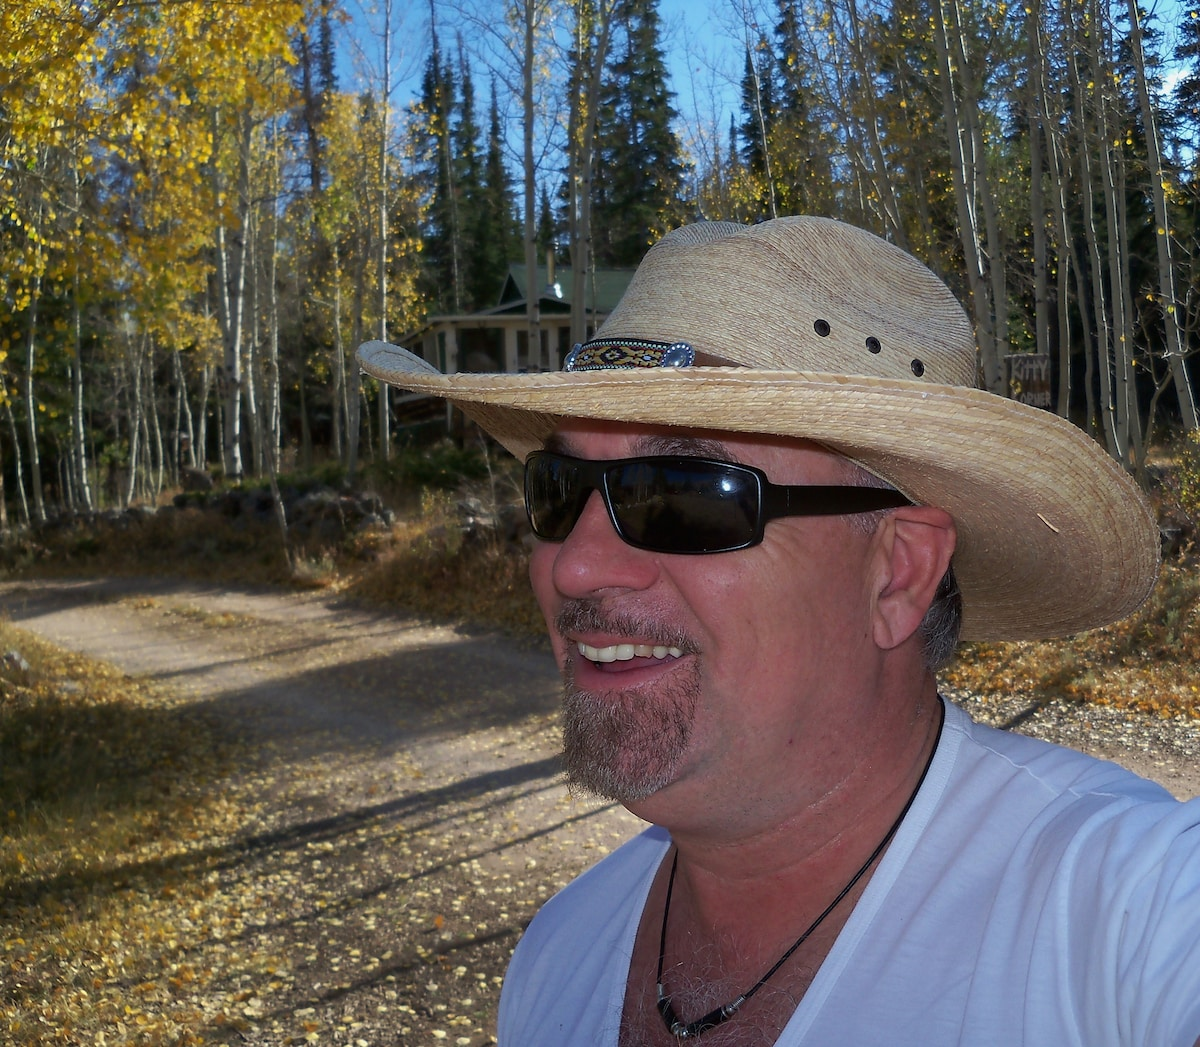 Eric From Cheyenne, WY